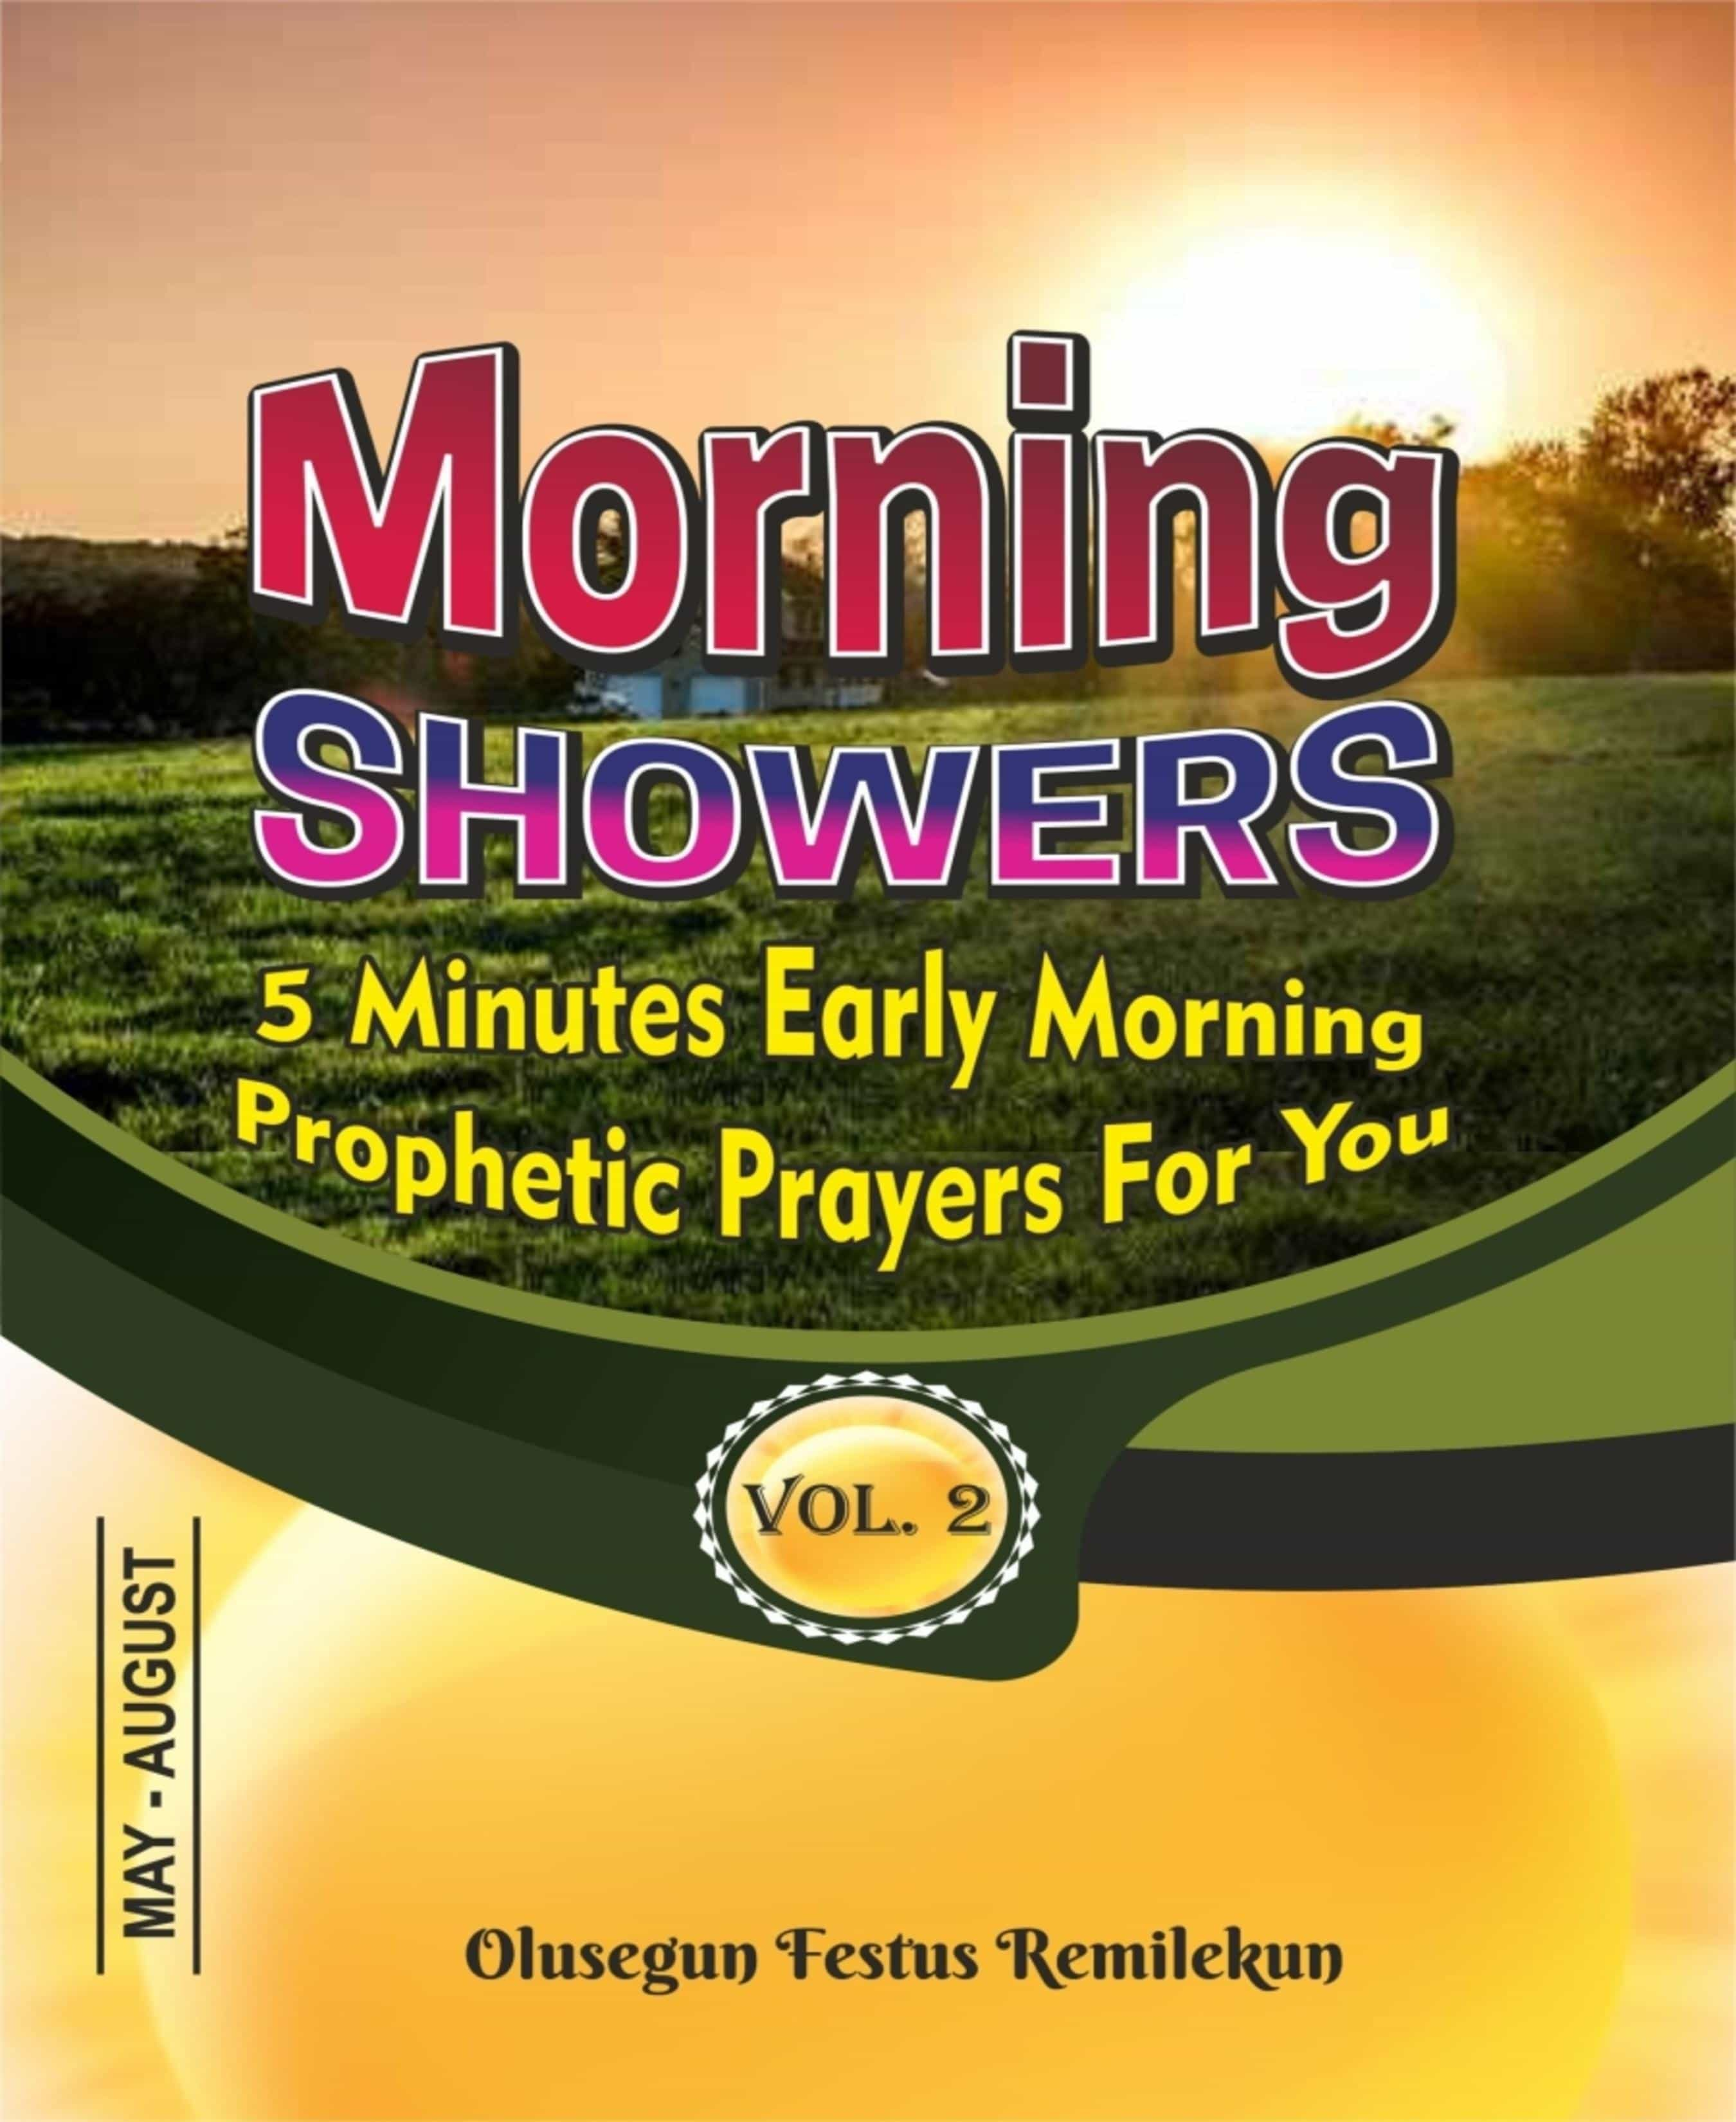 MORNING SHOWERS  5 MINUTES EARLY MORNING PROPHETIC PRAYERS FOR YOU  VOLUME 2